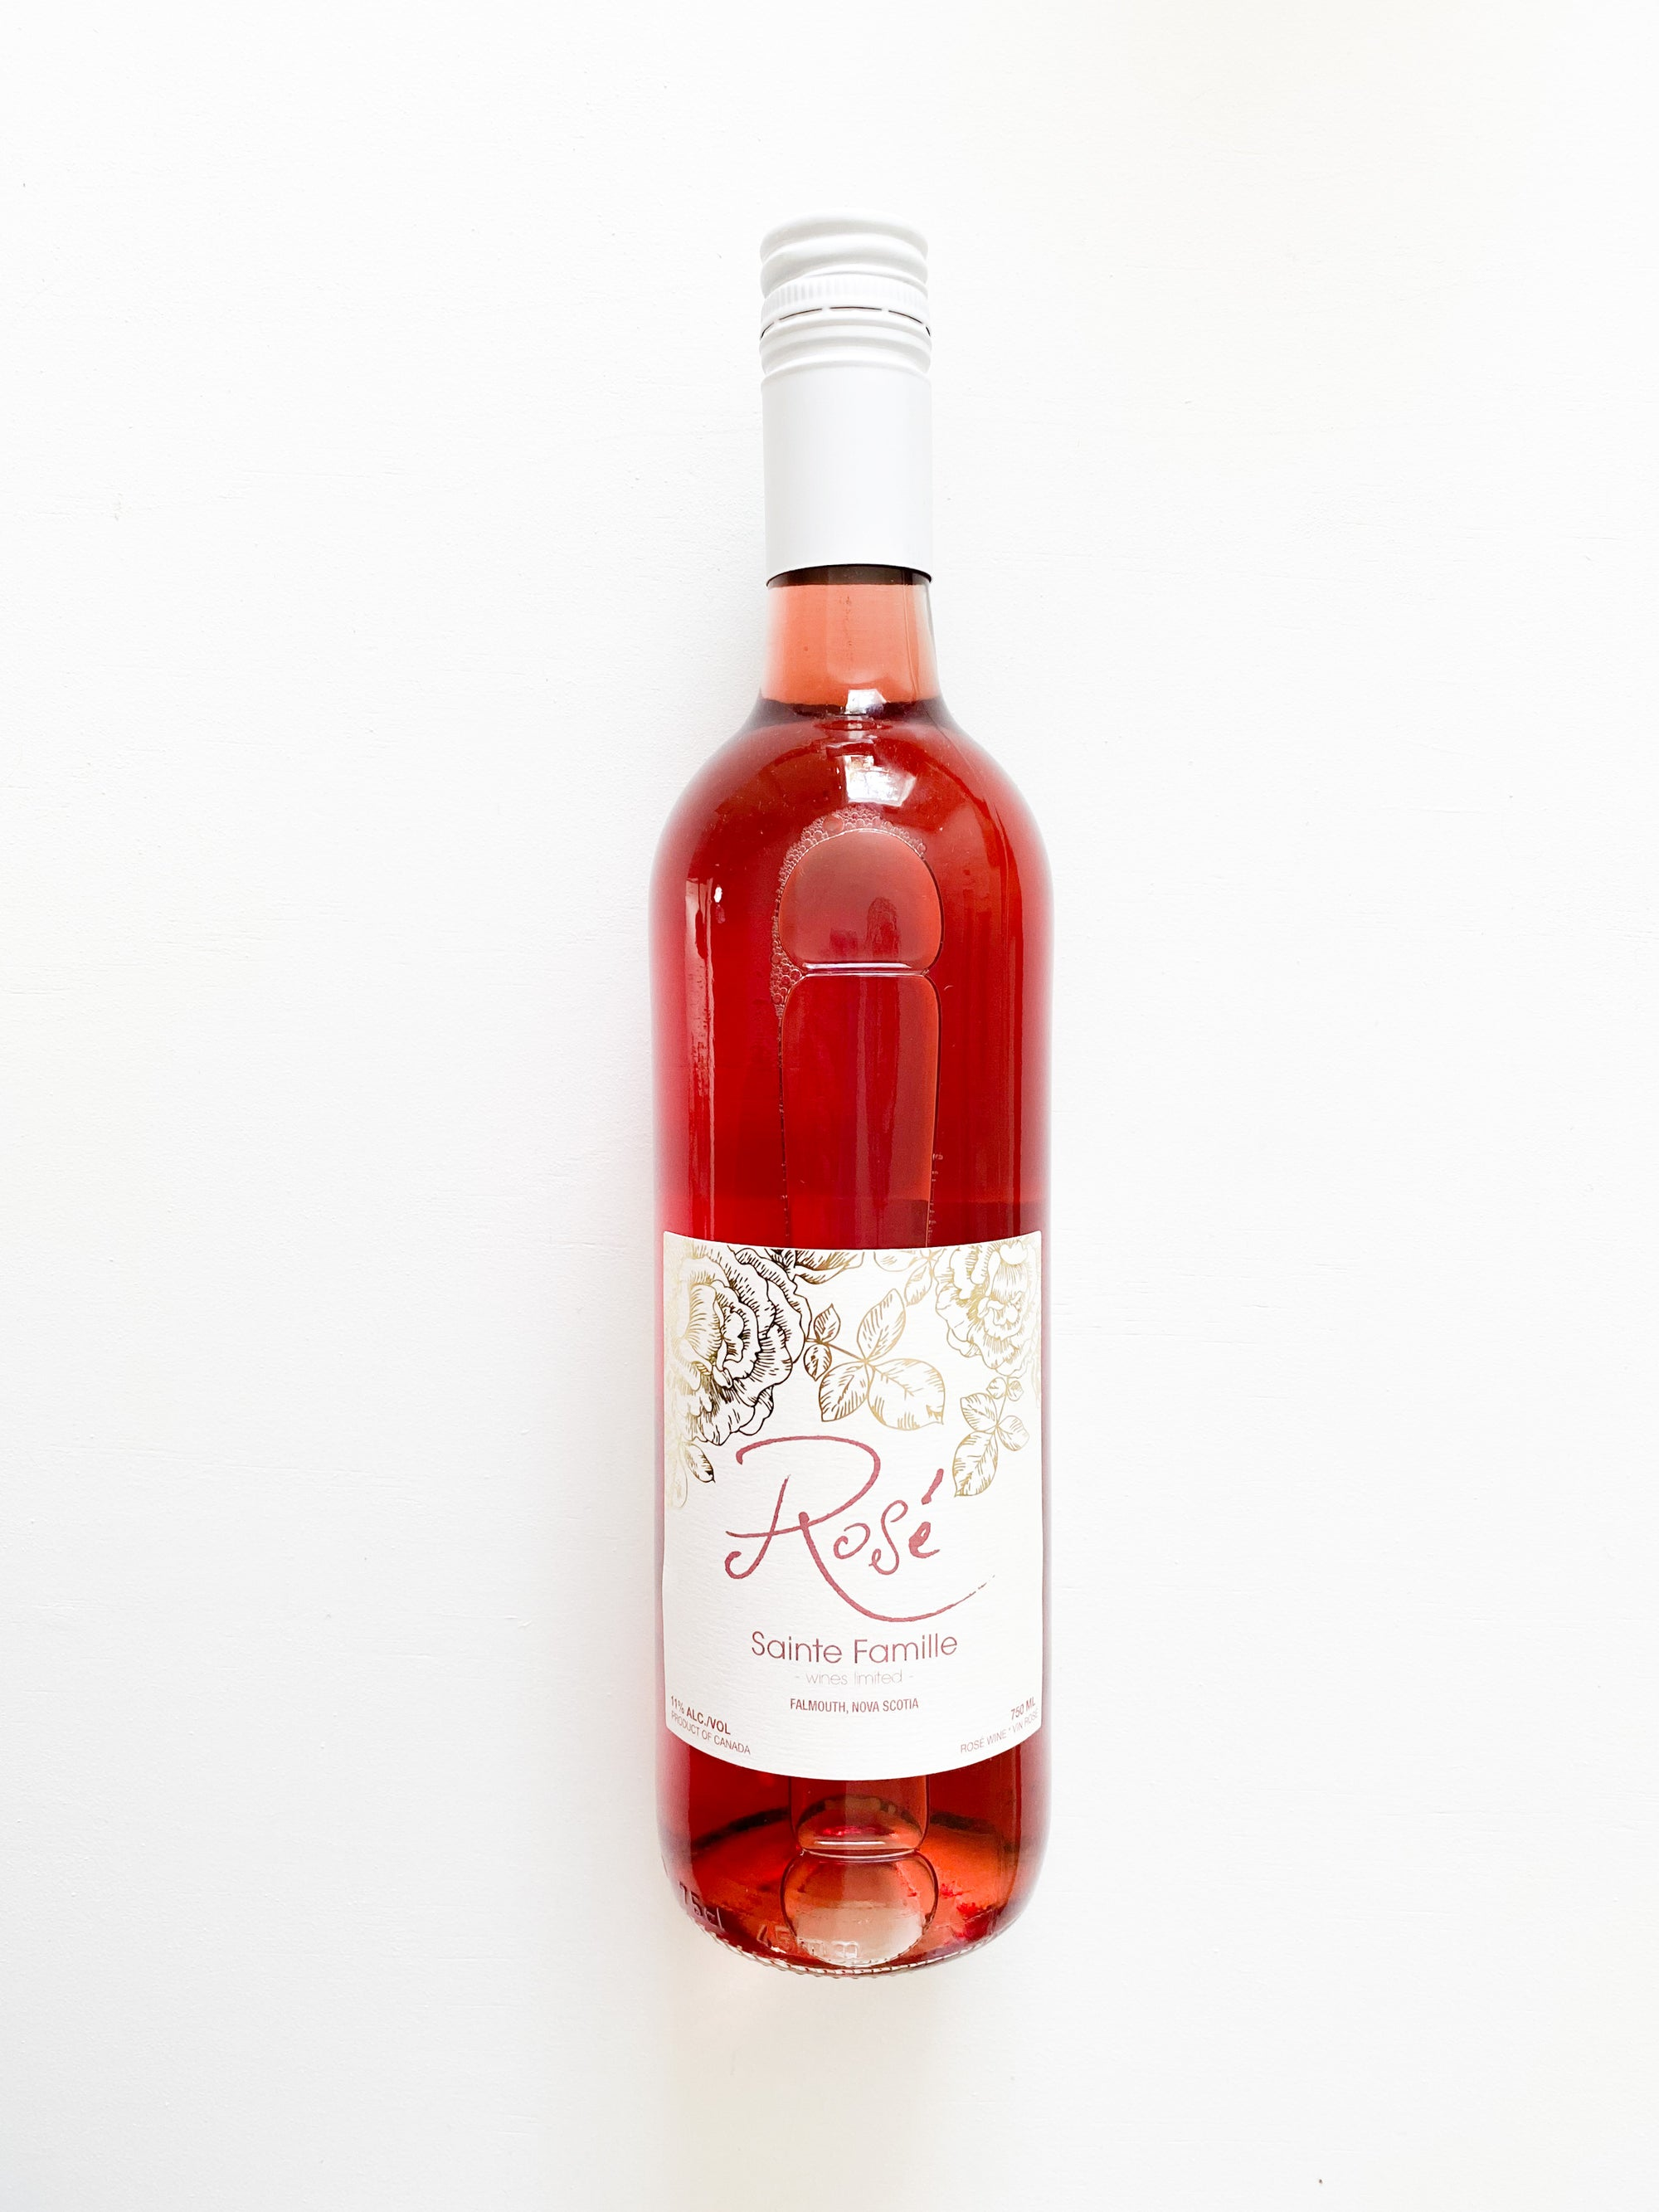 Bottle of Sainte-Famille Rosé